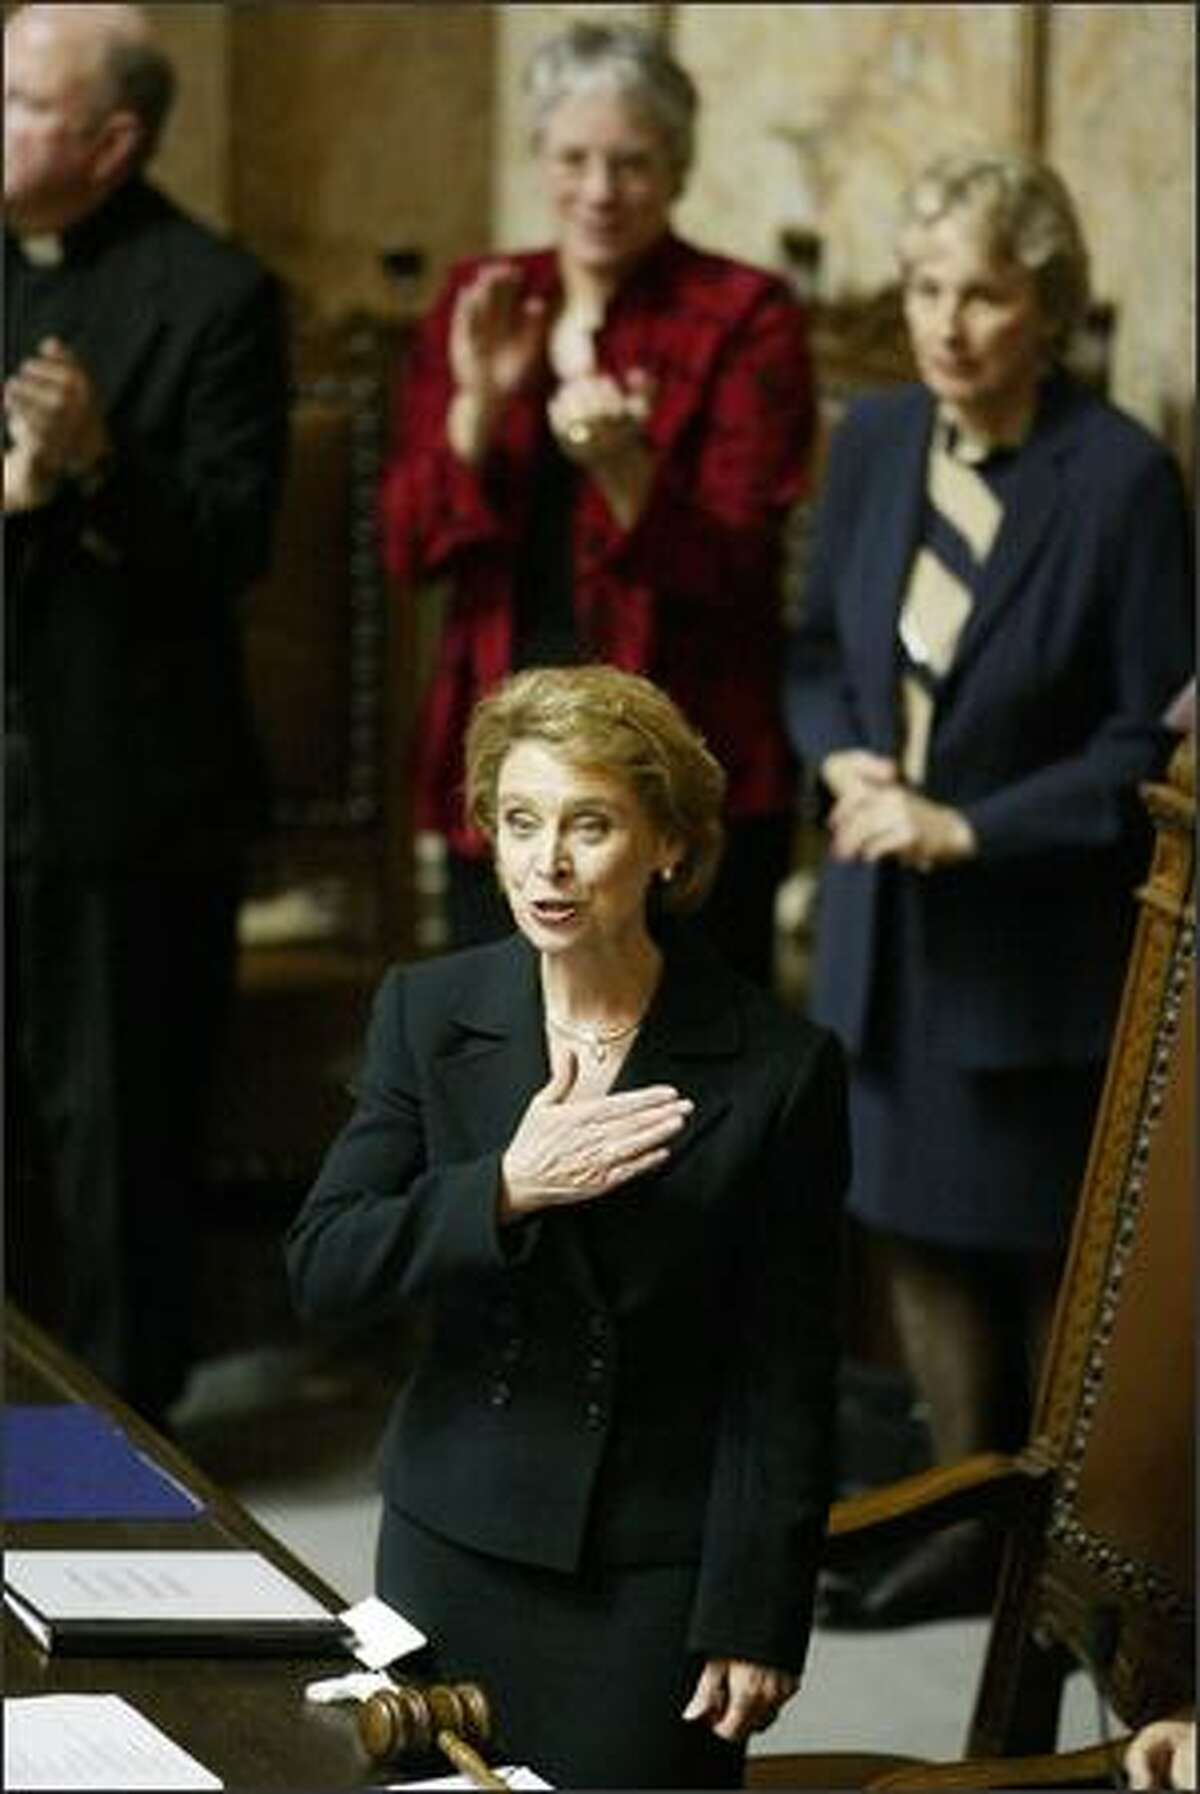 With a hand placed over her heart, Christine Gregoire acknowledges her family sitting in the gallery after she is sworn in as governor in the Legislature.